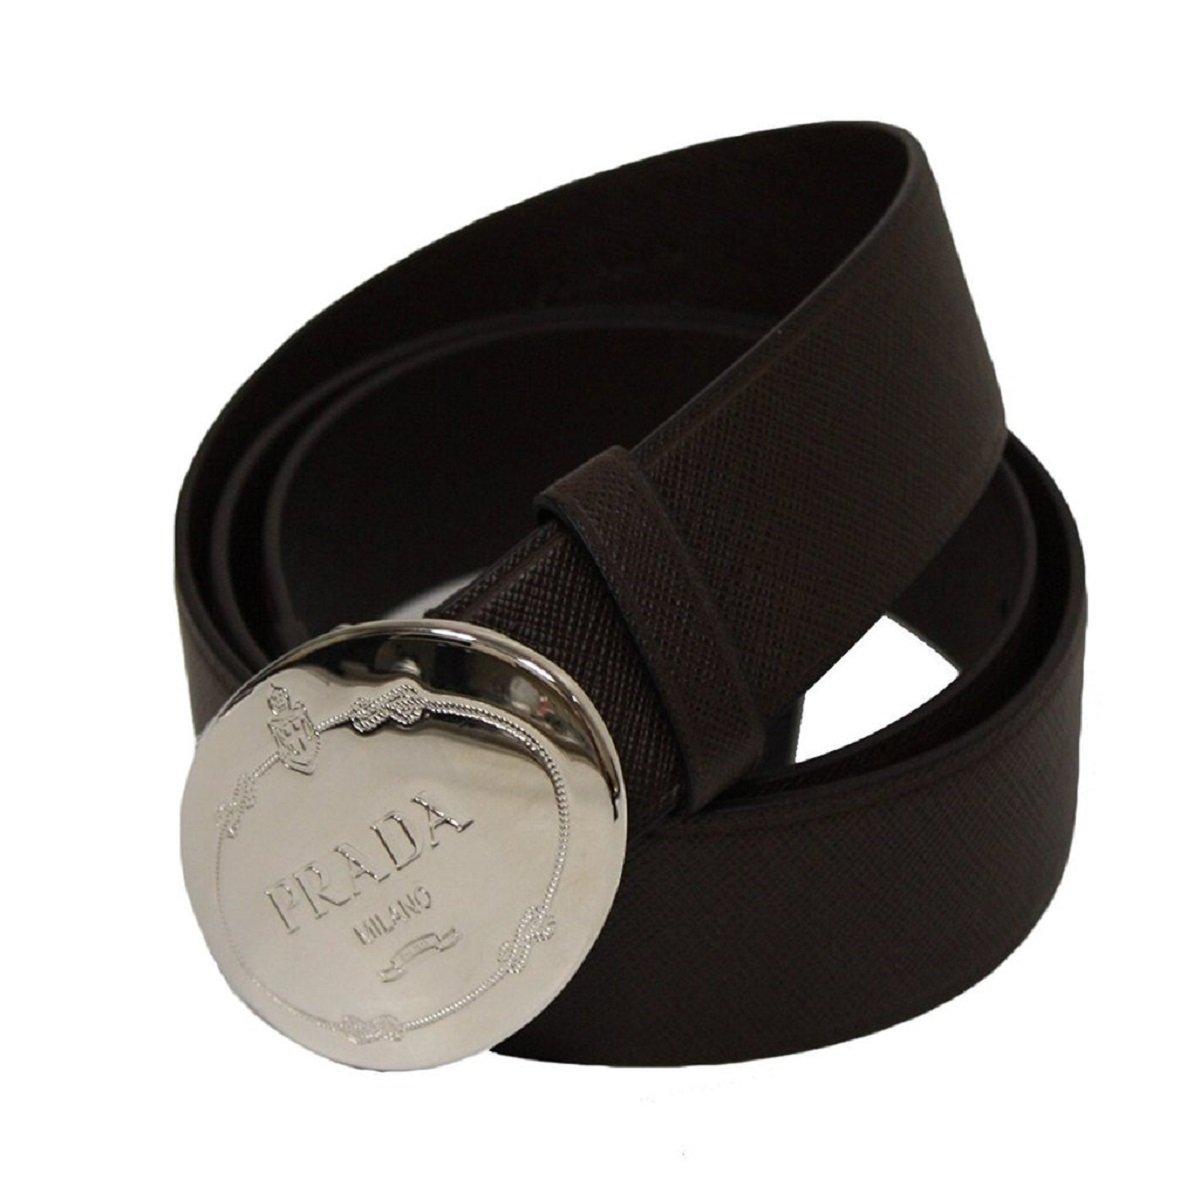 3a9080dd4fa7 Prada Black Saffiano Leather Plaque Buckle Belt for Men 2CM046 Size  100 40  at Amazon Men s Clothing store